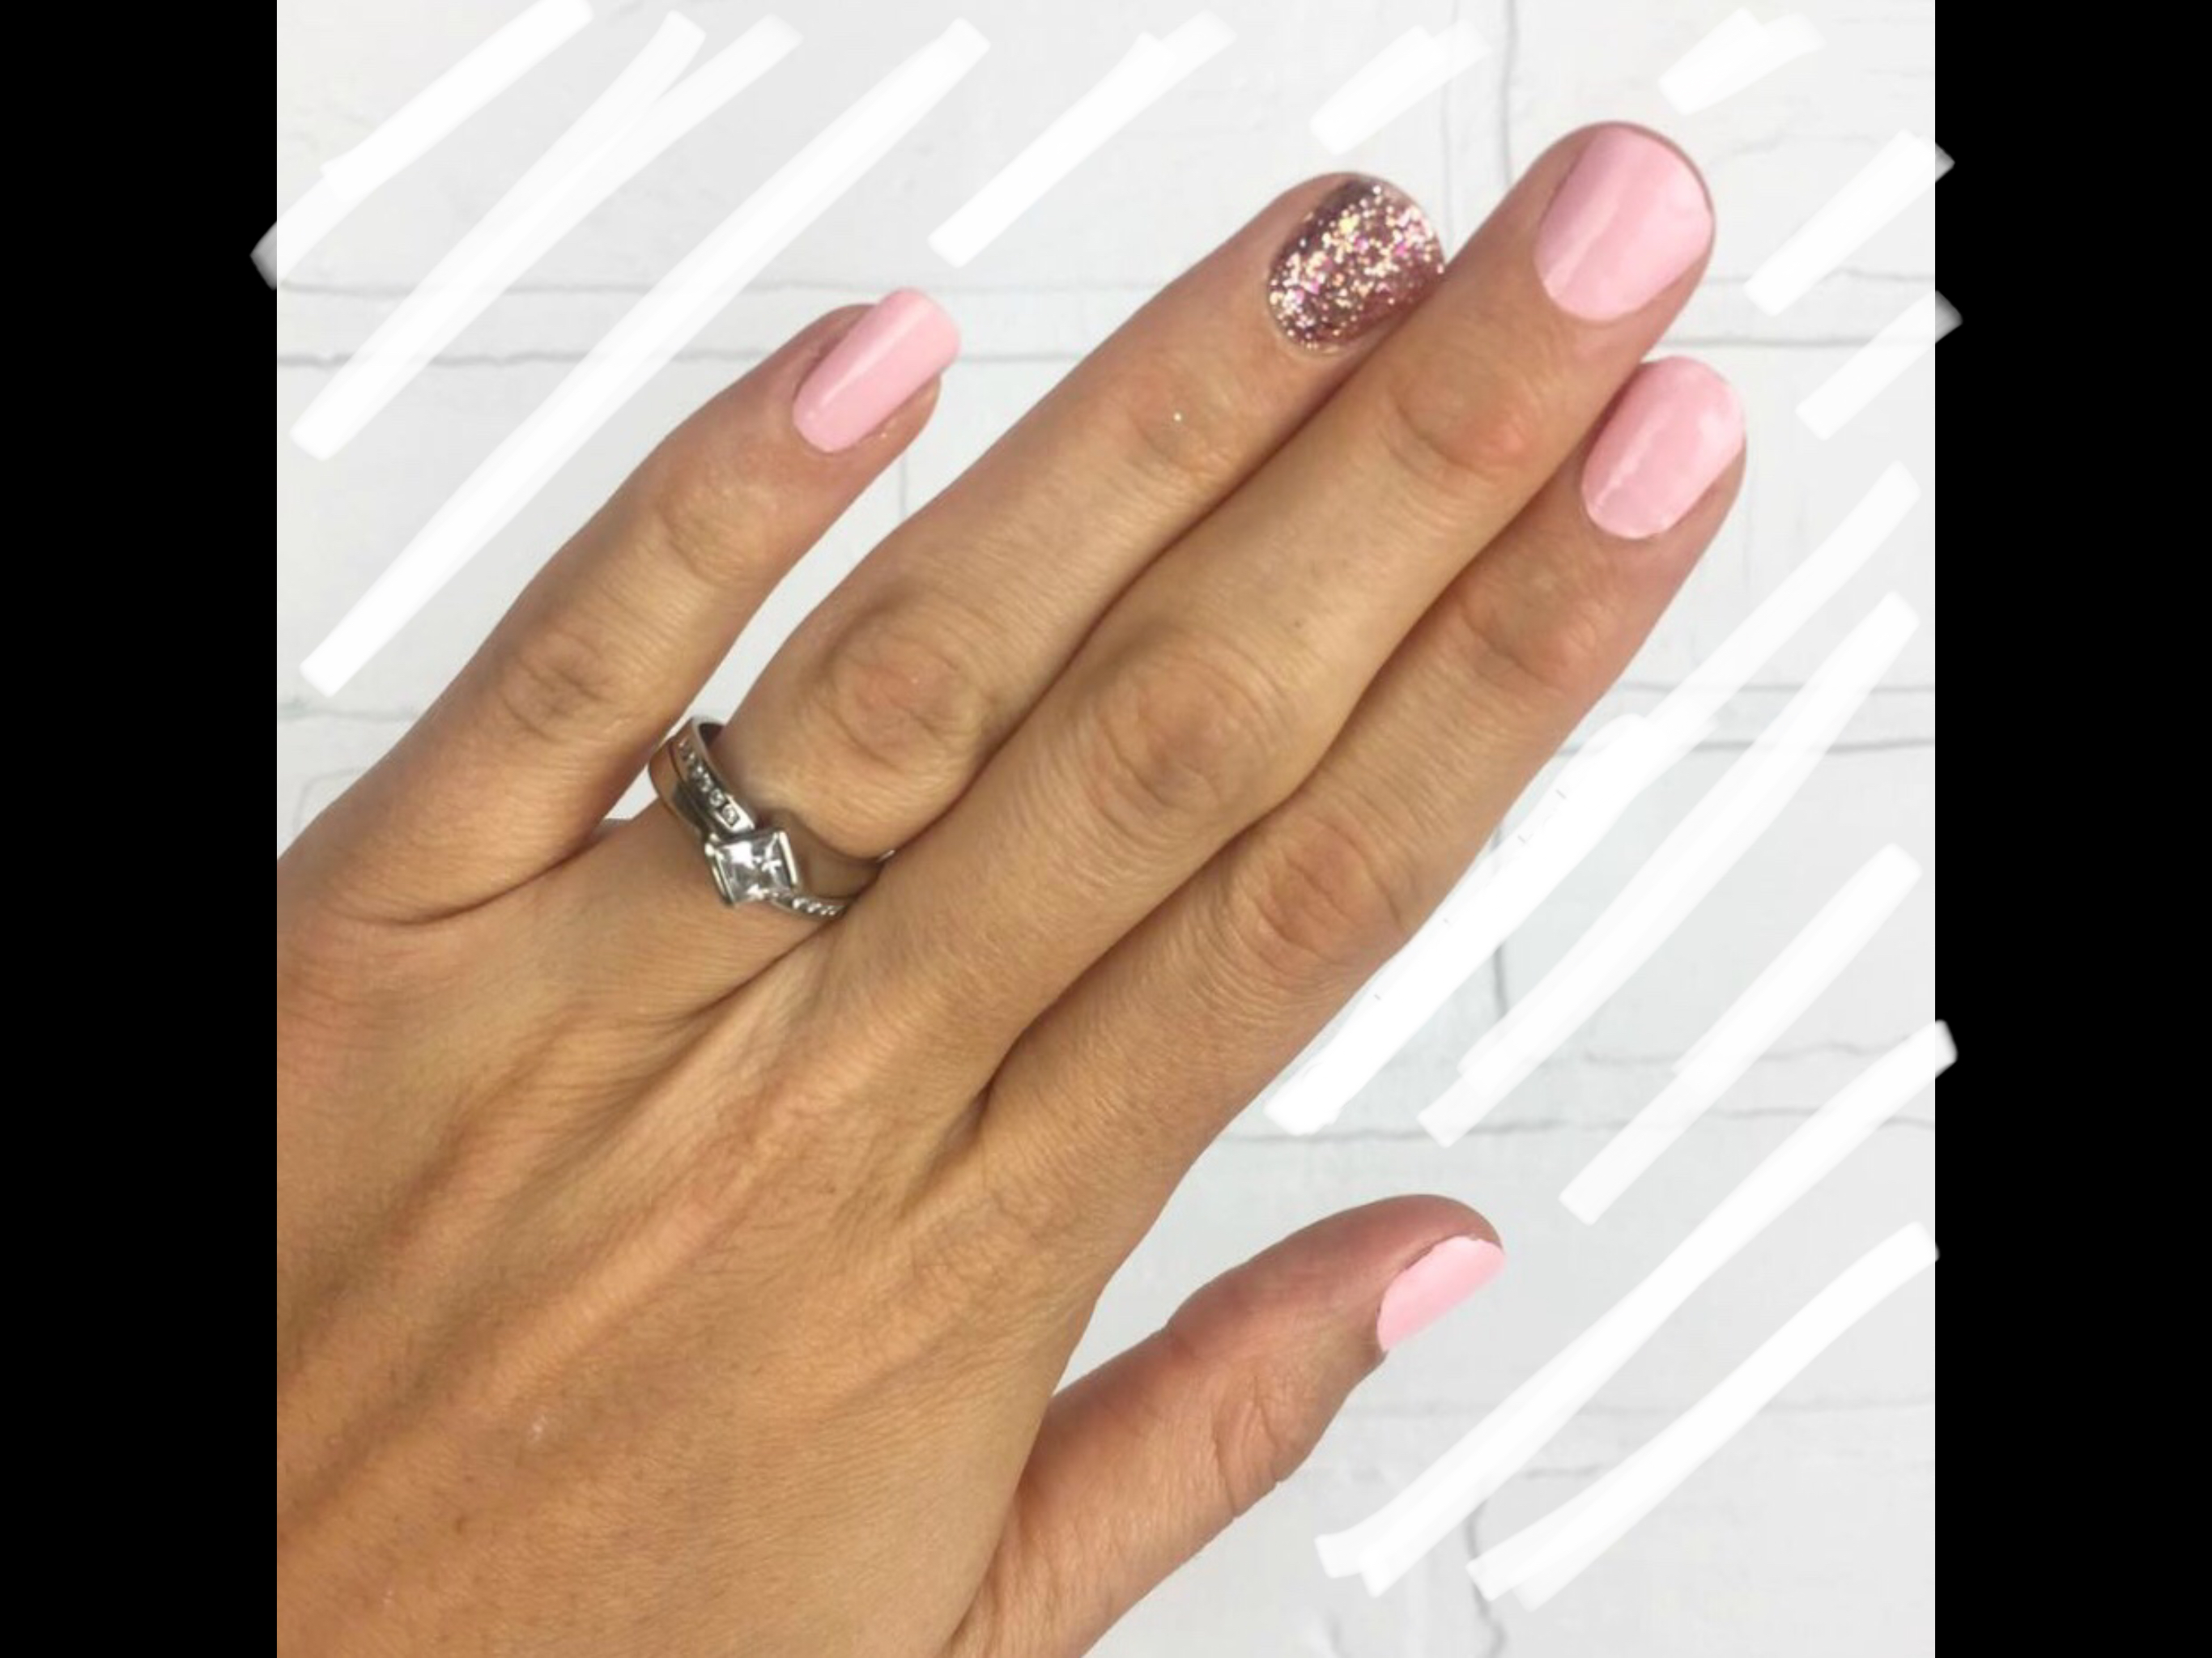 help my nails are paper thin Sassy nails 586 likes full service nail salon jump to sections of this page accessibility help press alt + / to open this menu facebook email or phone: password: forgot account home about i n the removal of the gel he filed my nails paper thin and they are breaking.